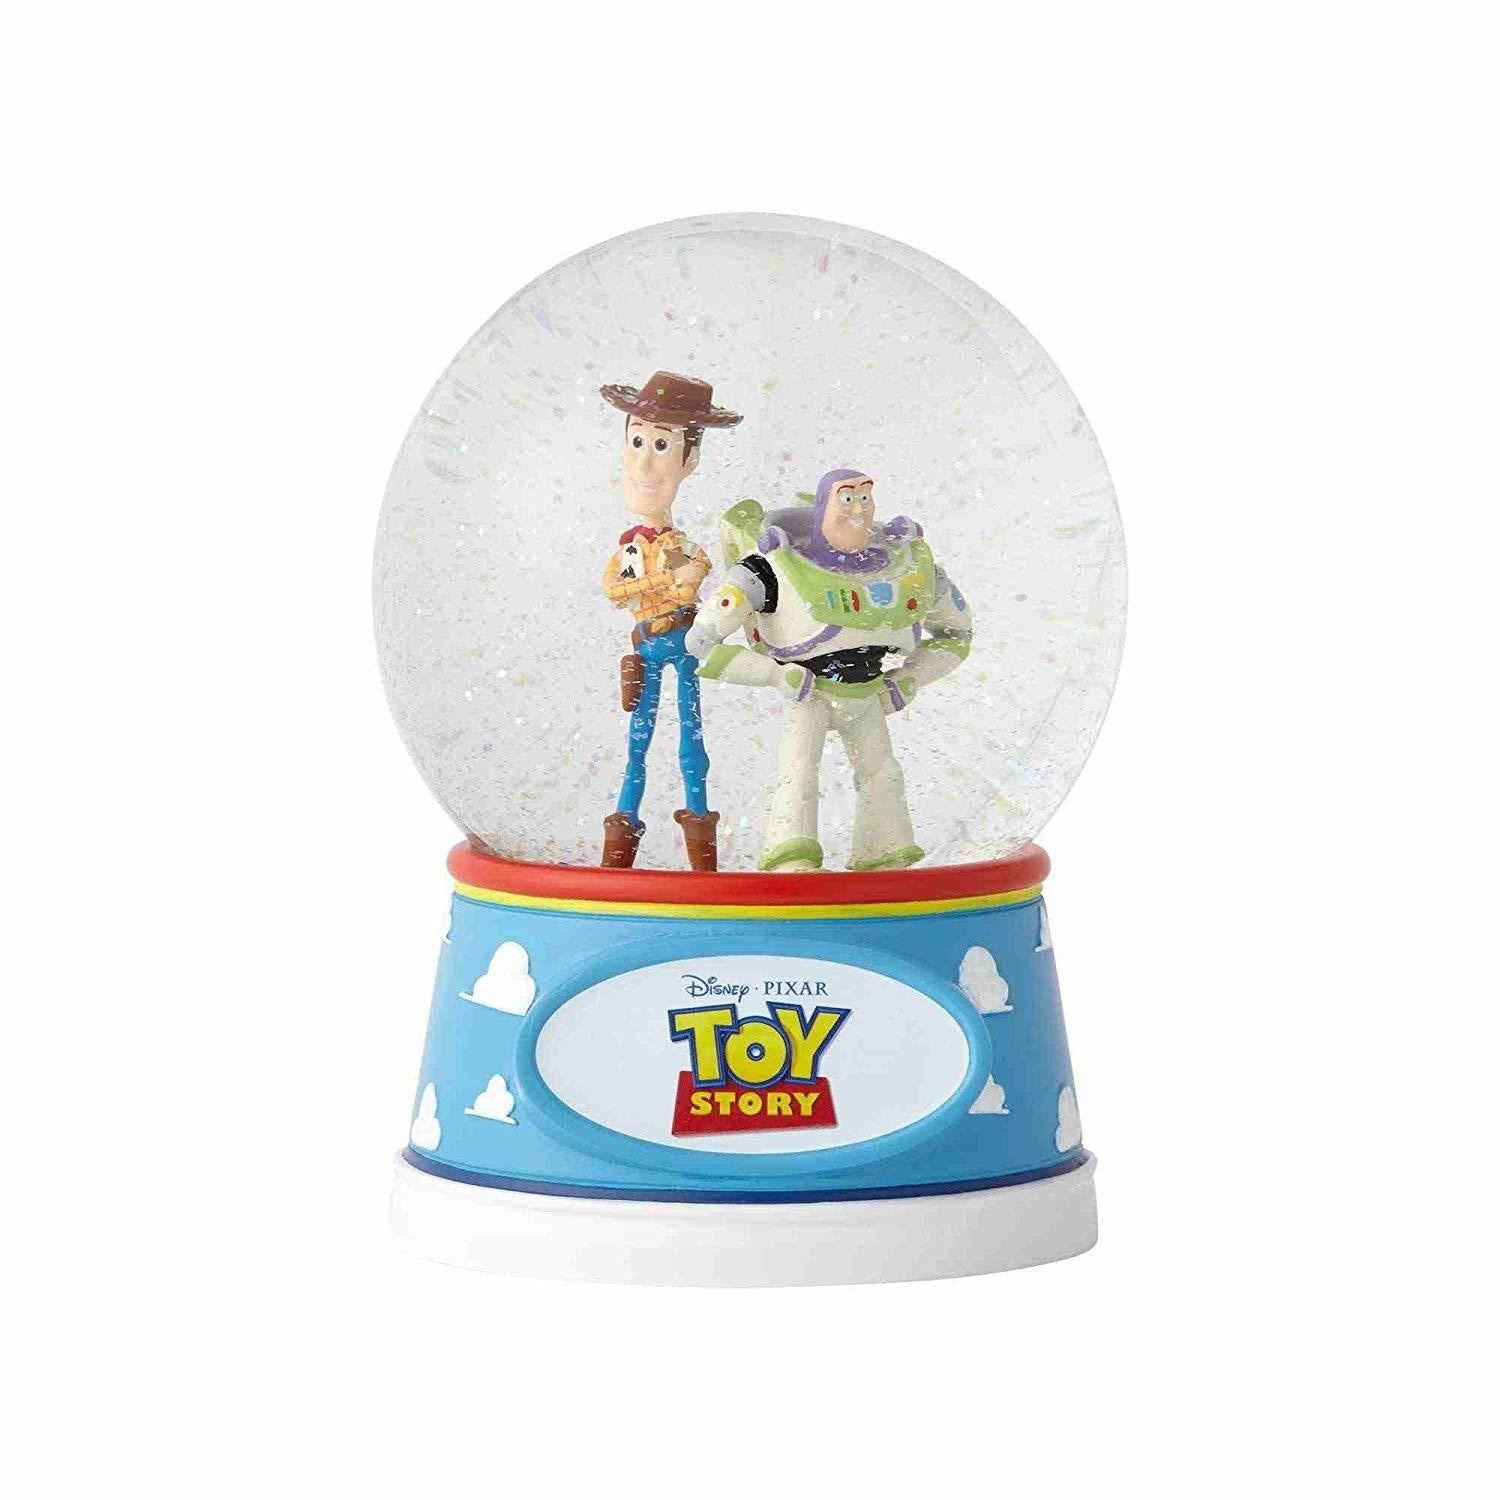 Pixar Toy Story Waterball Disney Showcase